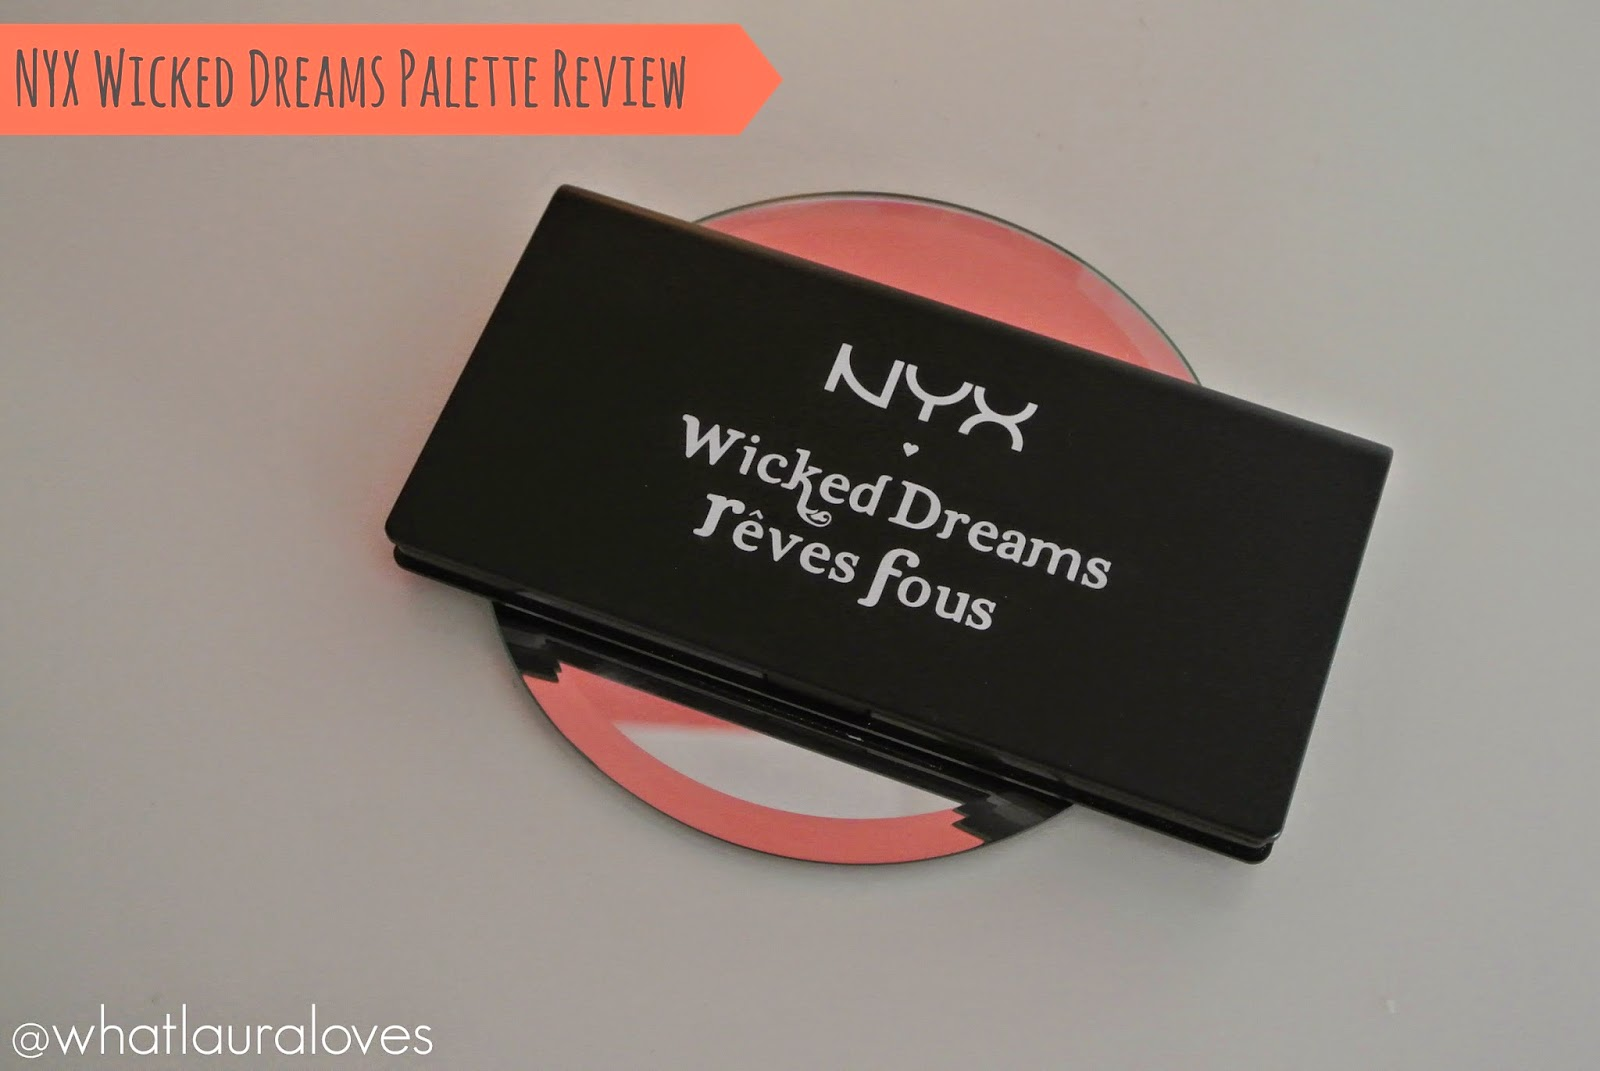 NYX Wicked Dreams Palette Review Eyeshadow